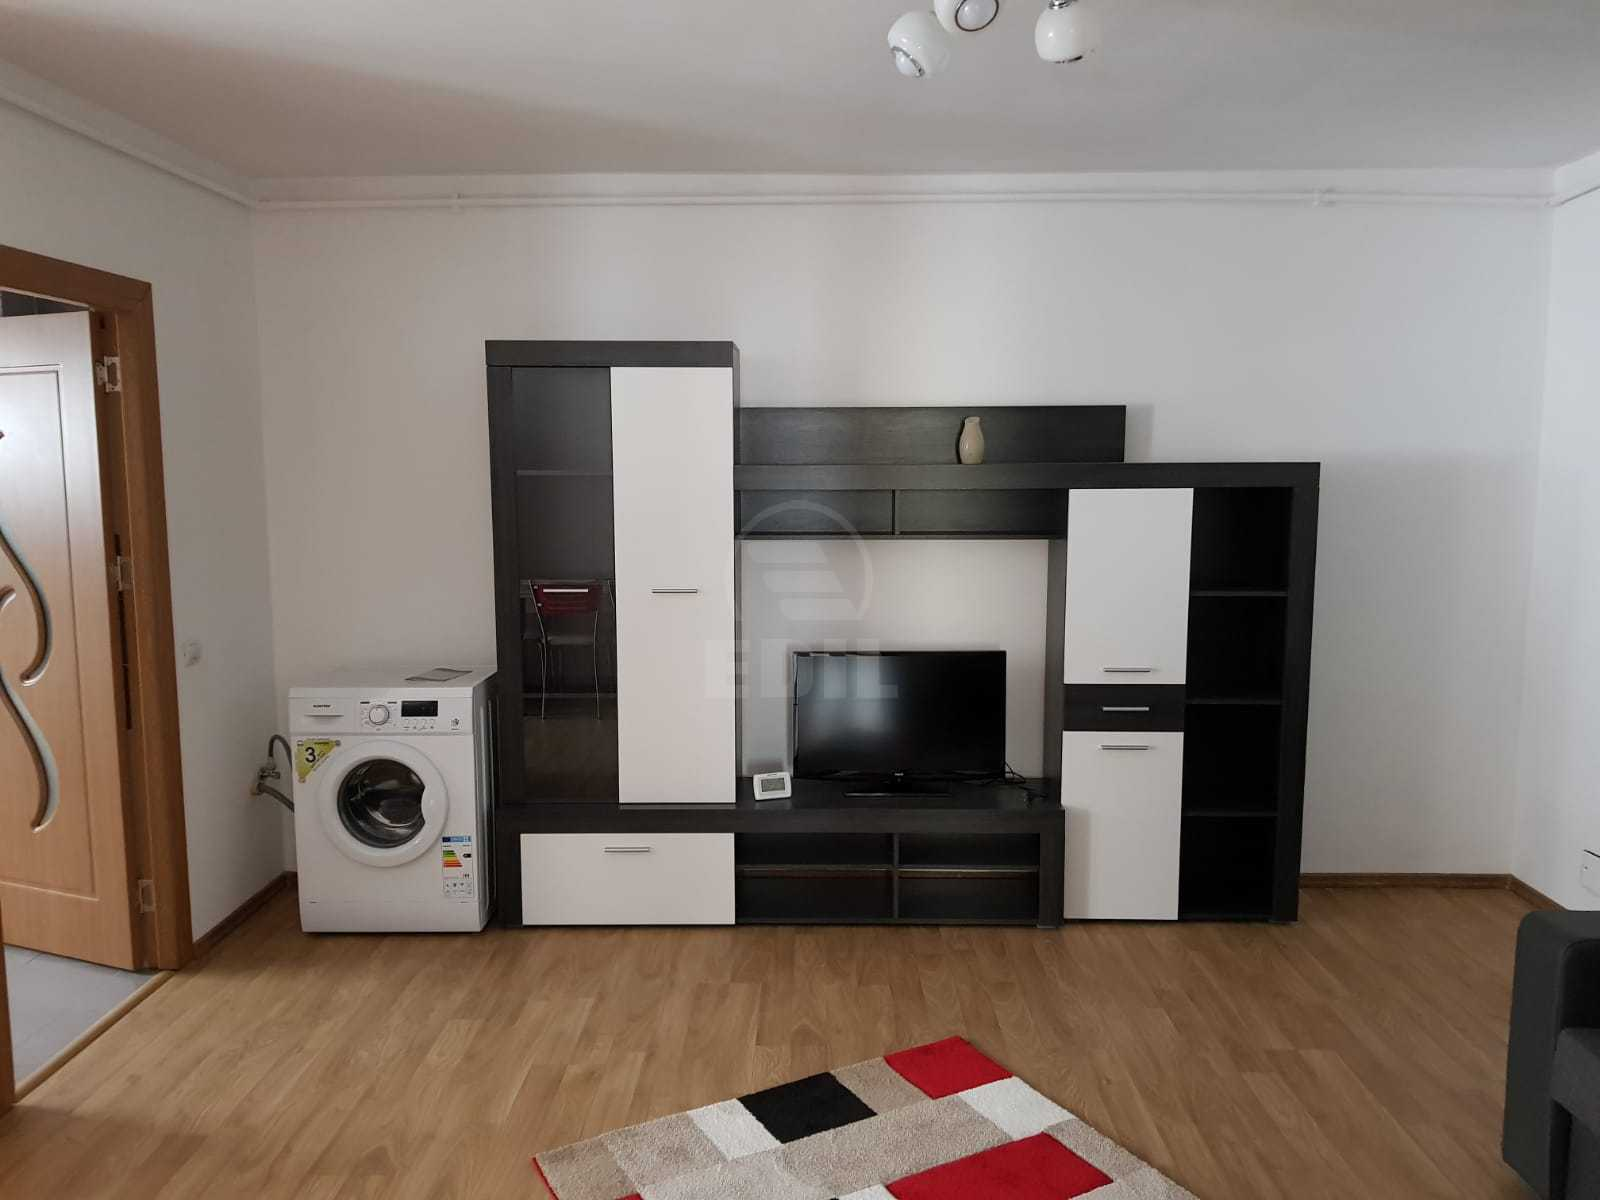 Apartment for rent 3 rooms, APCJ232650FLO-15